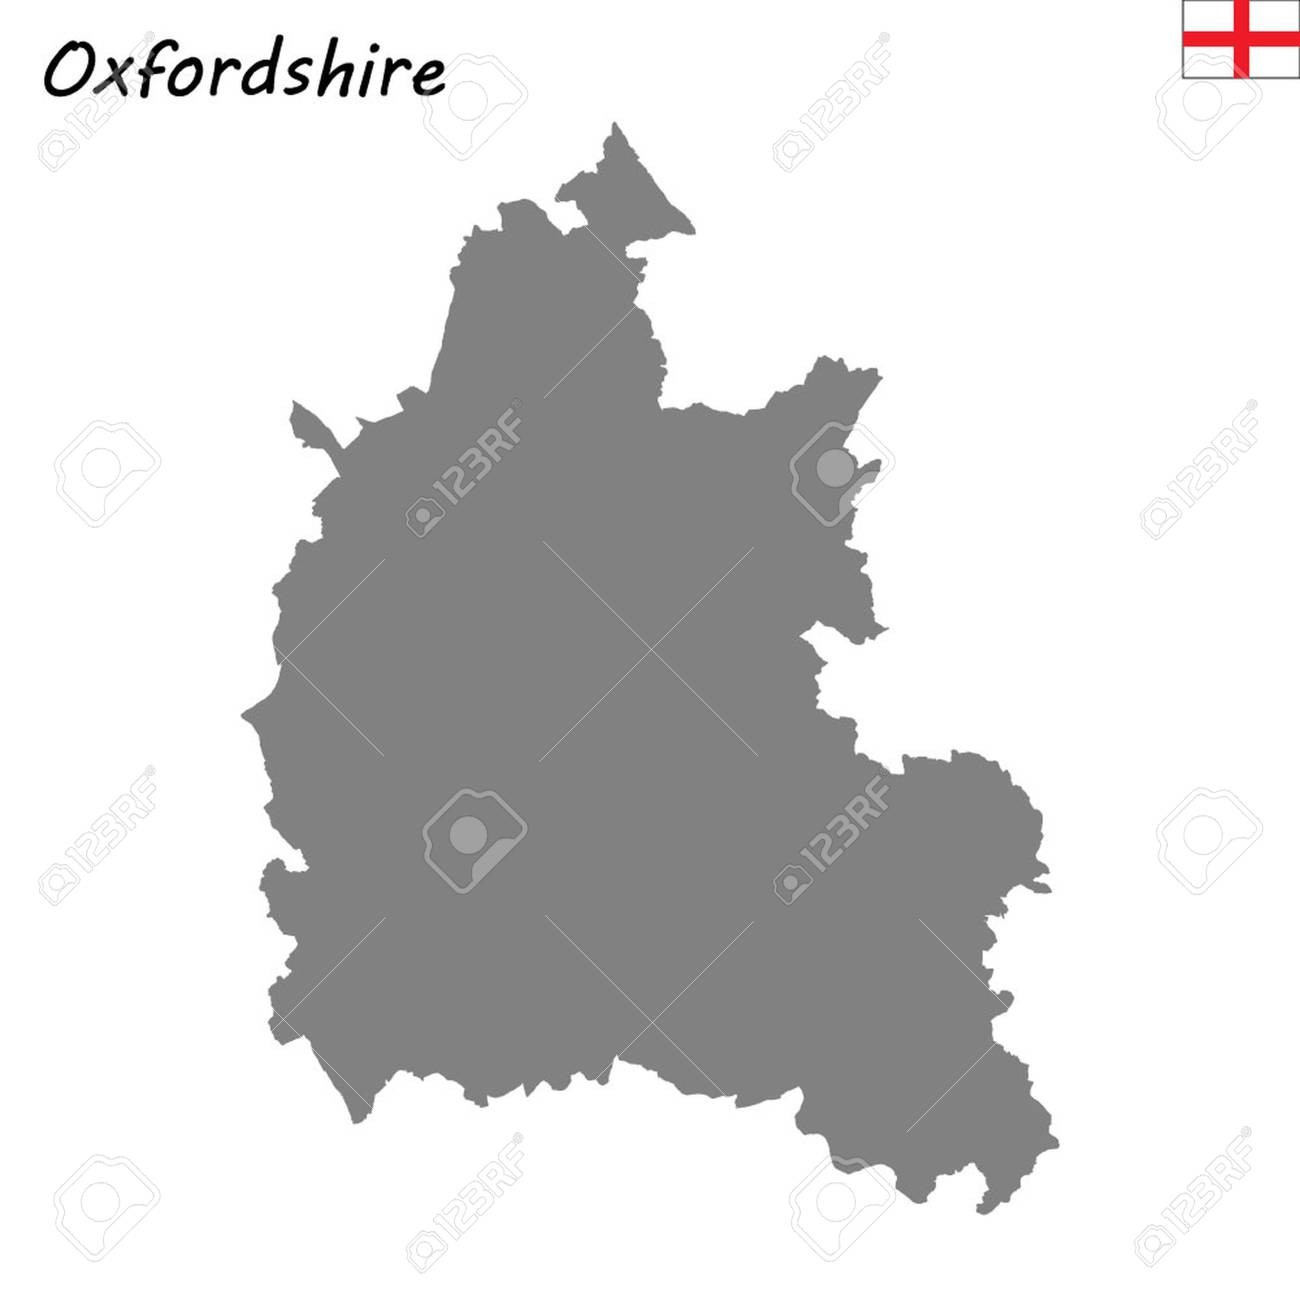 High Quality Map Is A Ceremonial County Of England Oxfordshire